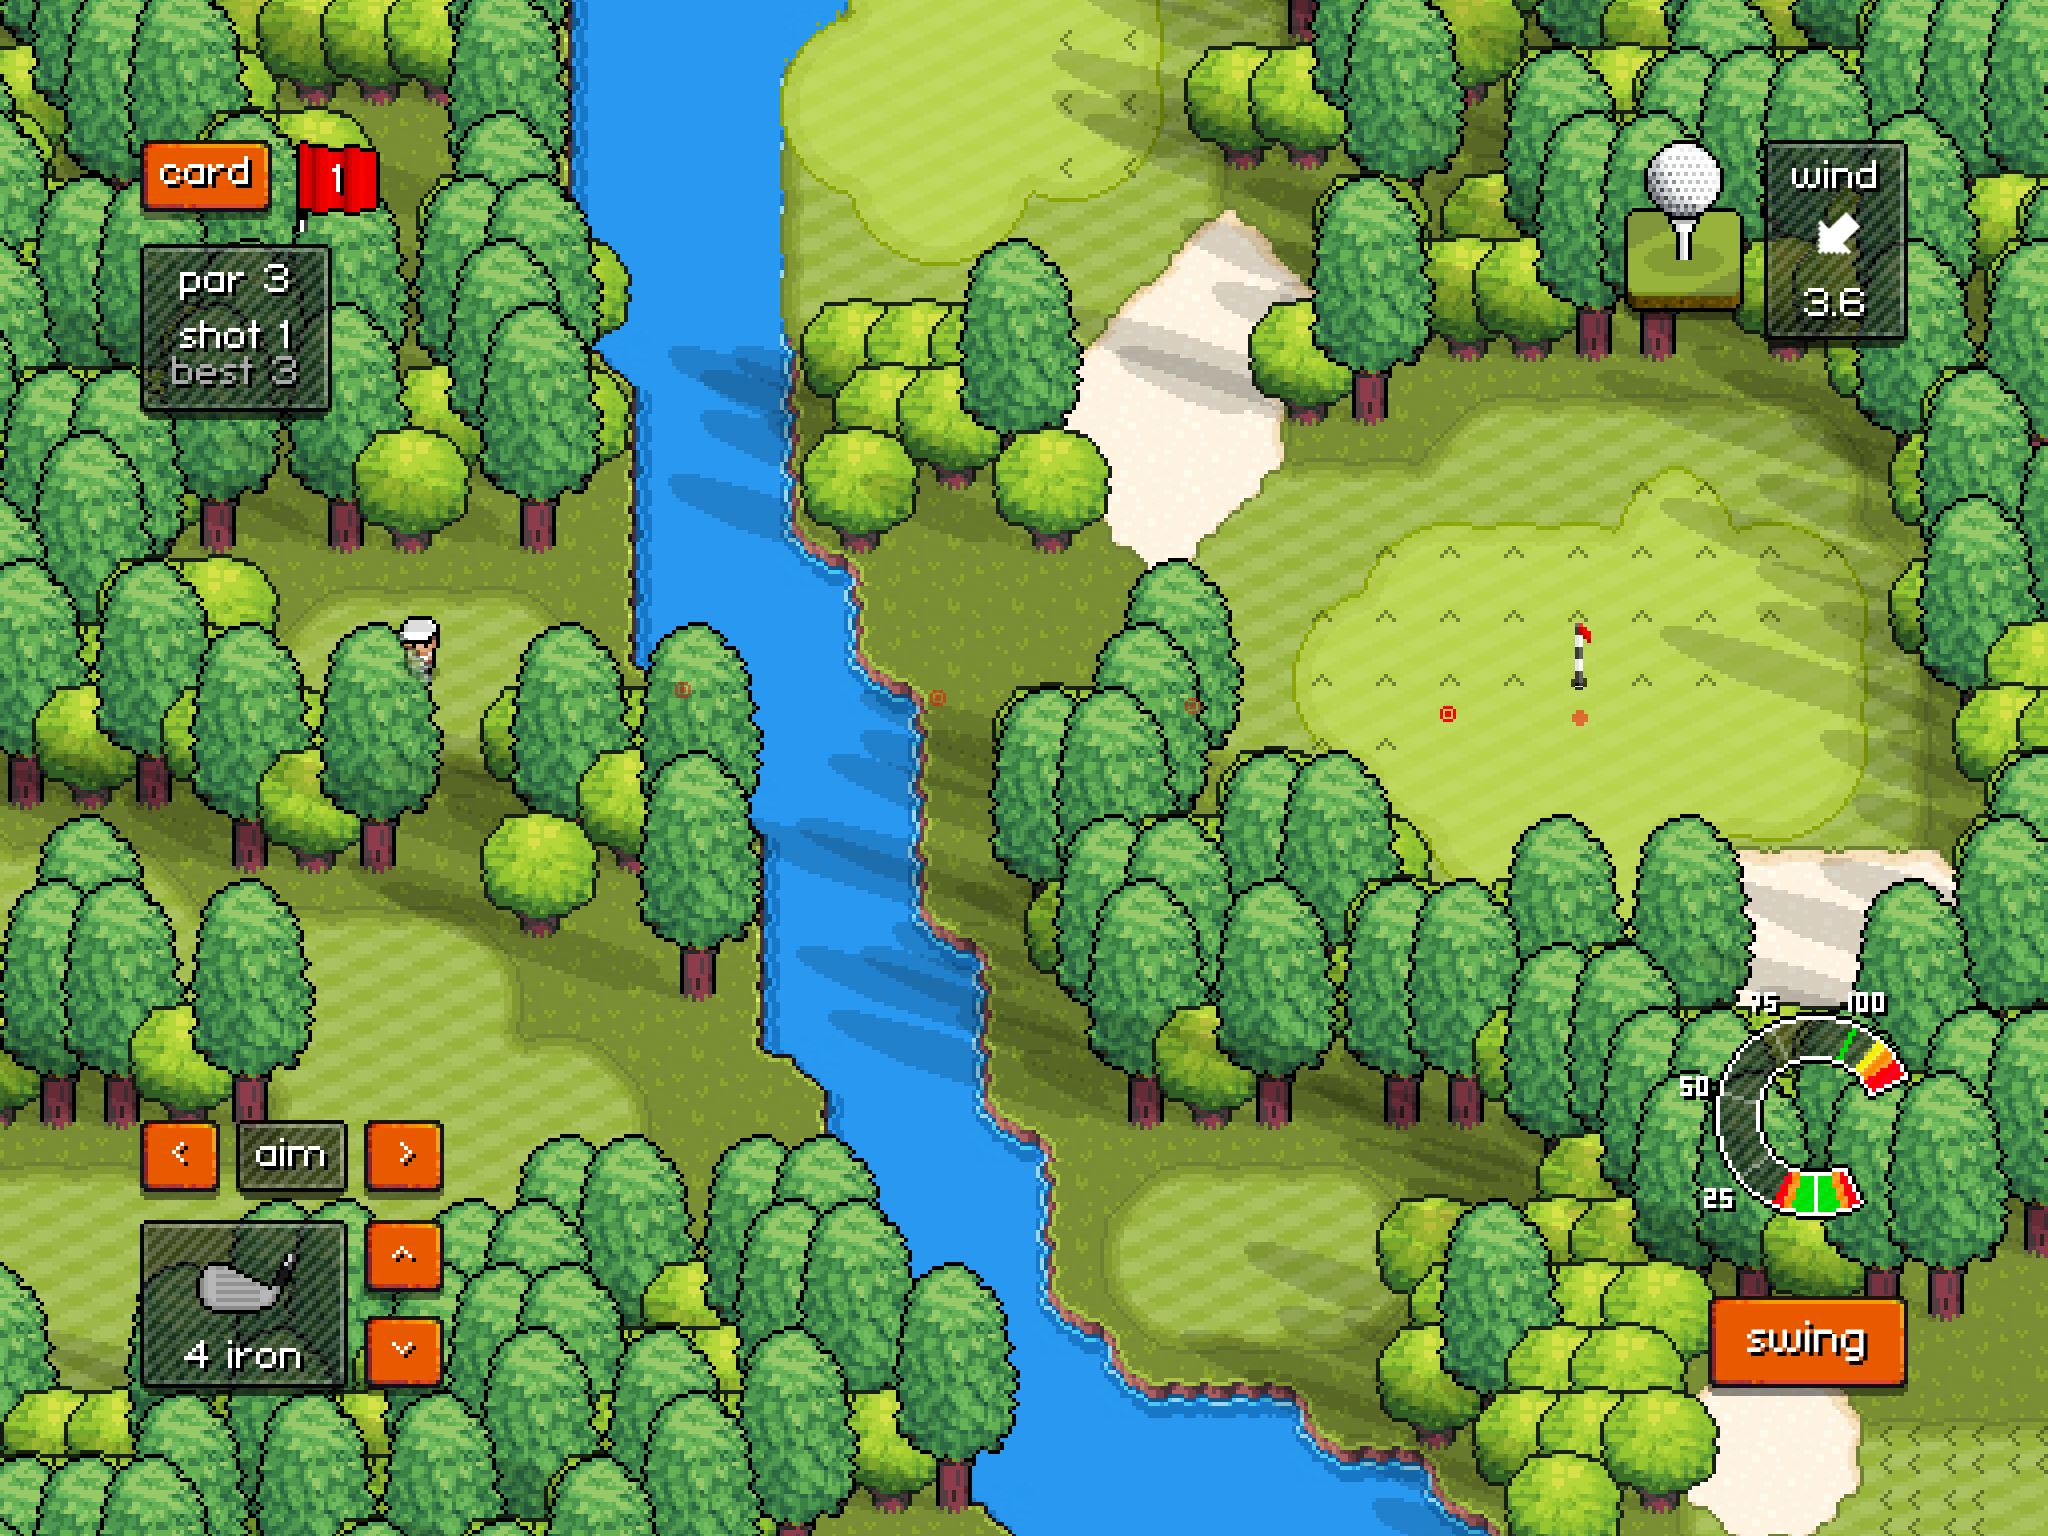 Pixel Pro Golf Brings Entertaining Arcade Golf to iOS Devices Image